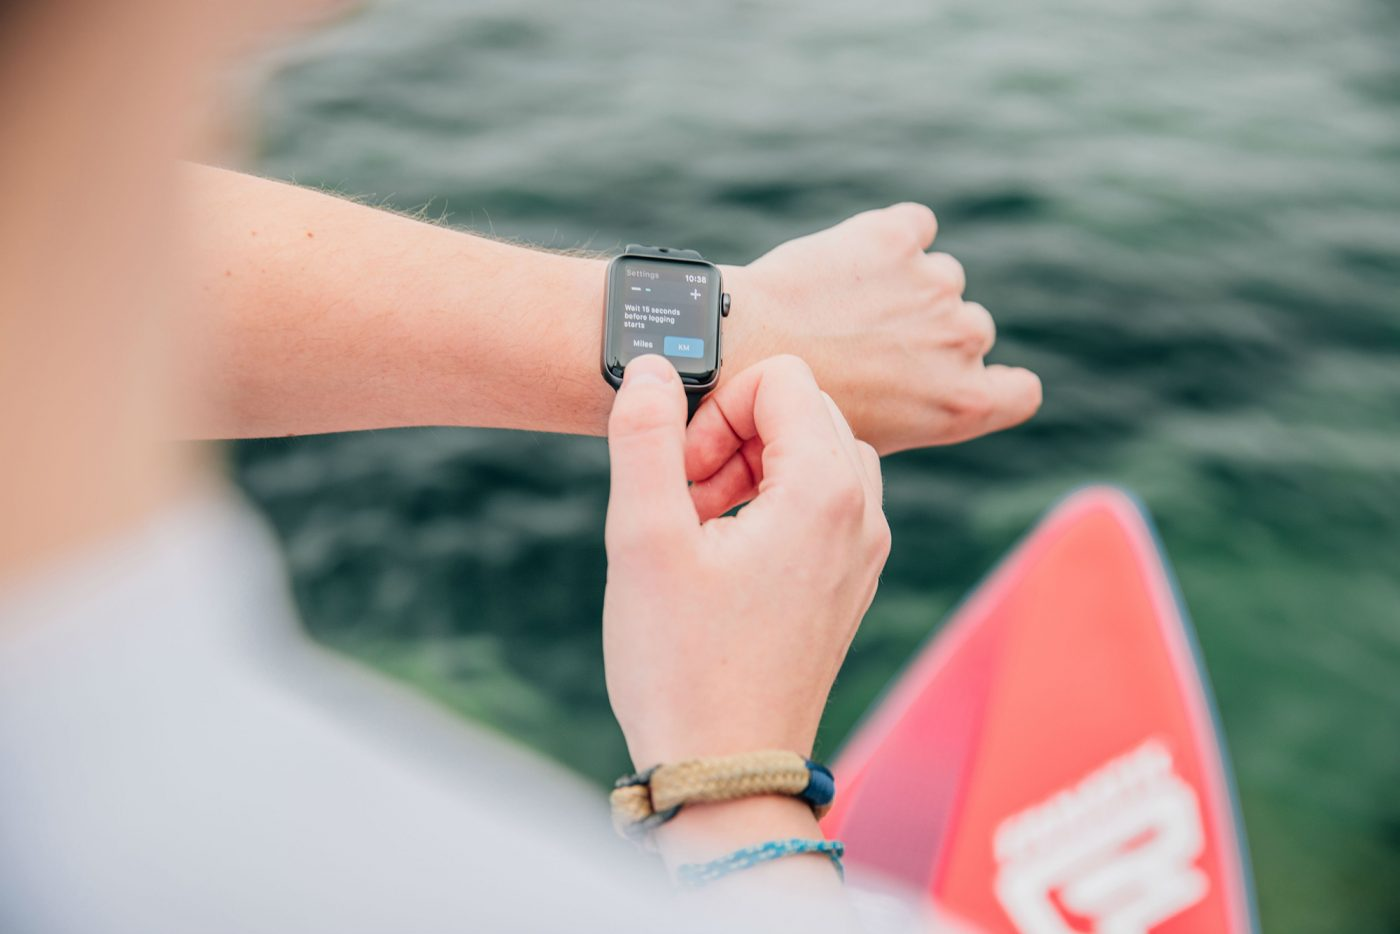 Man using digital watch while standing on a paddleboard.